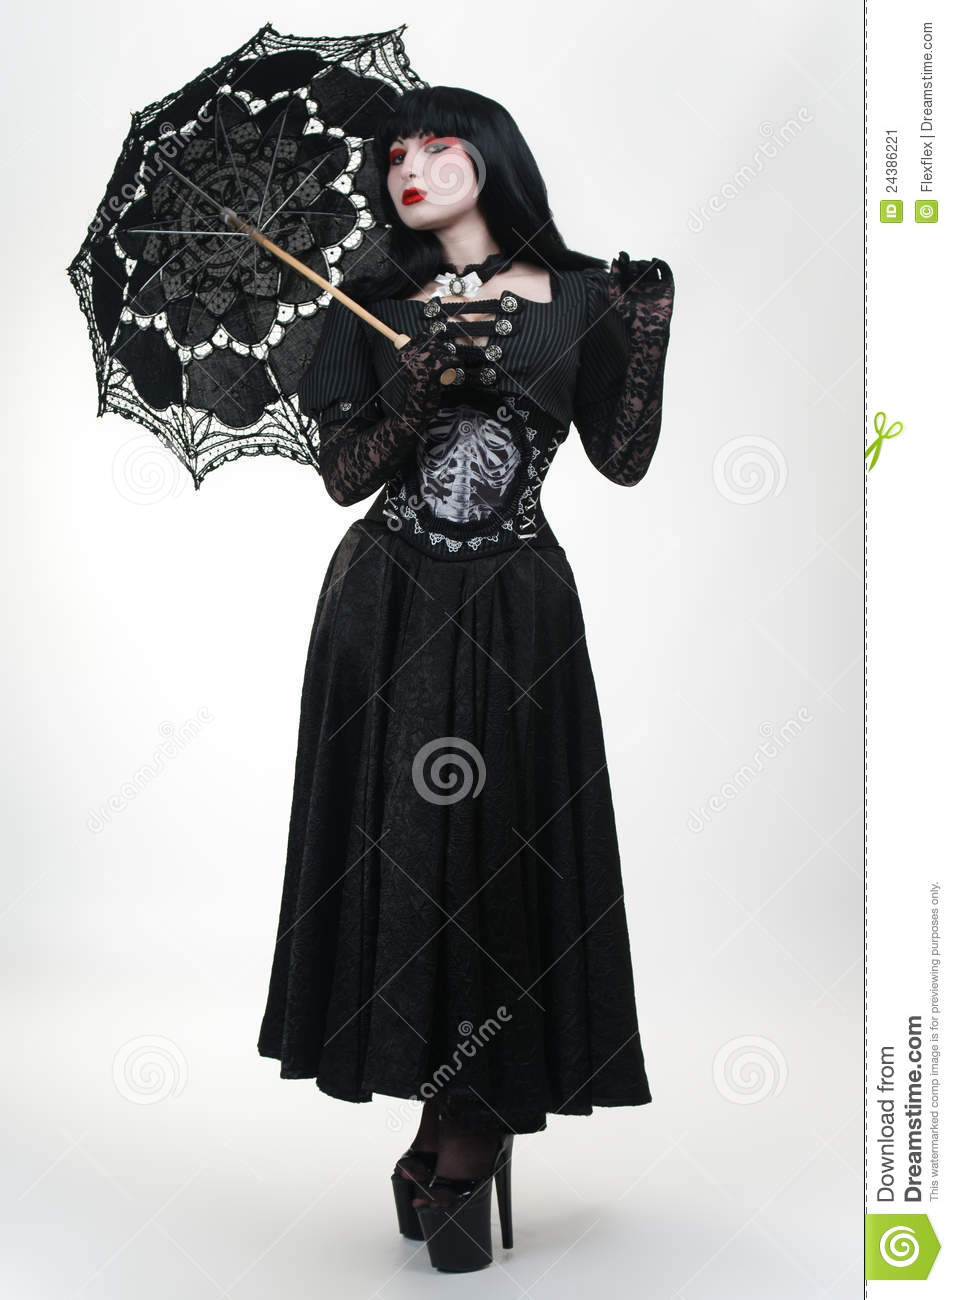 Gothic Vampire Girl In Black Dress With Umbrella Stock